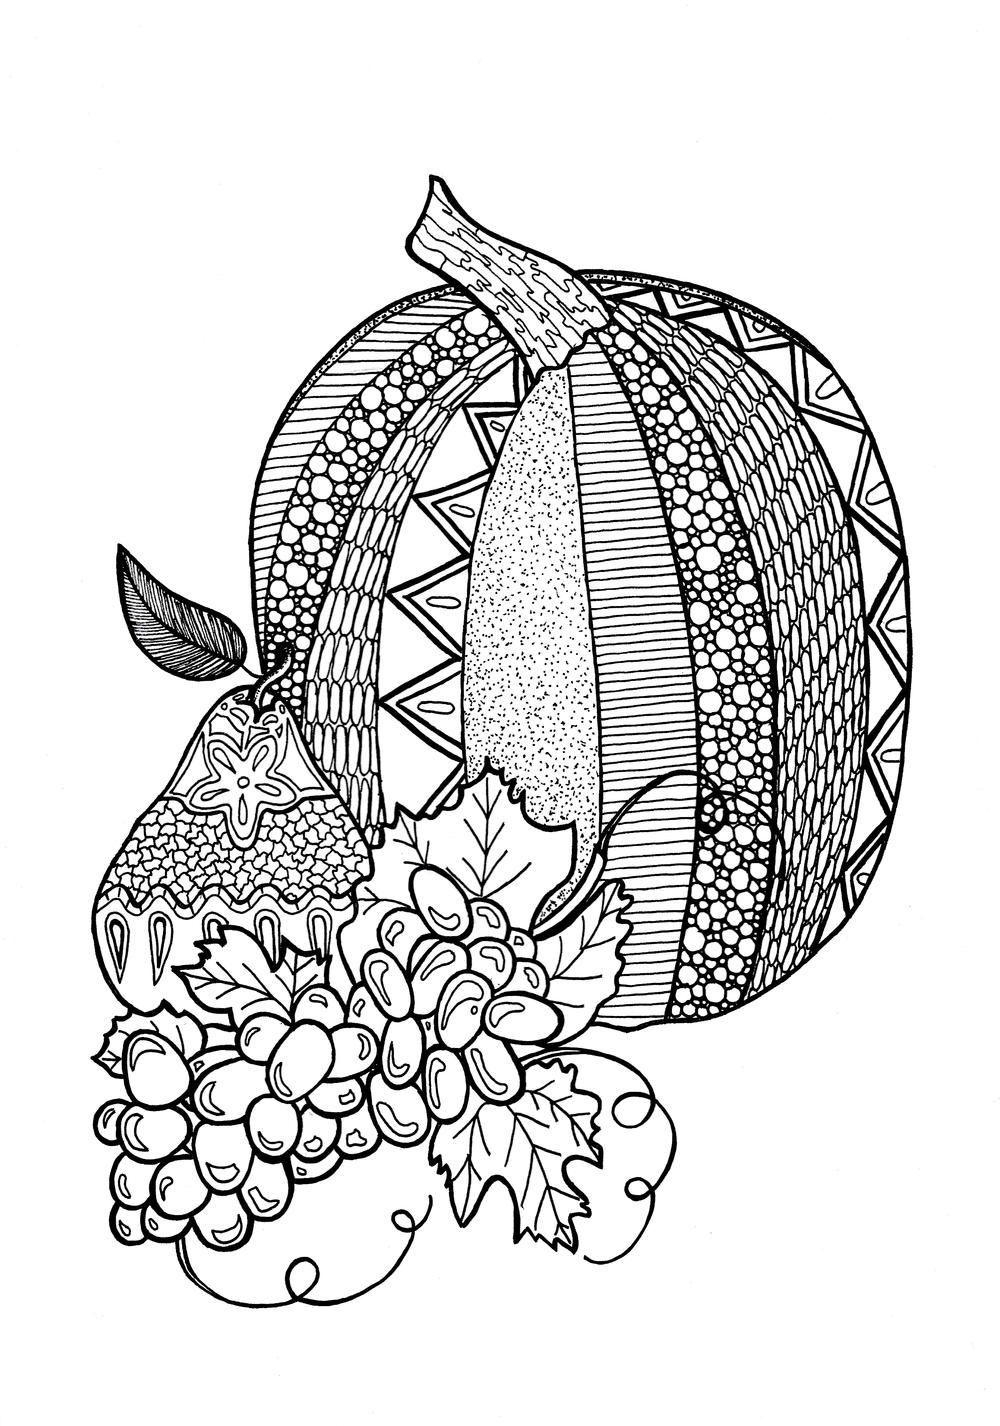 Pin On Printable Coloring Pages [ 1426 x 1000 Pixel ]